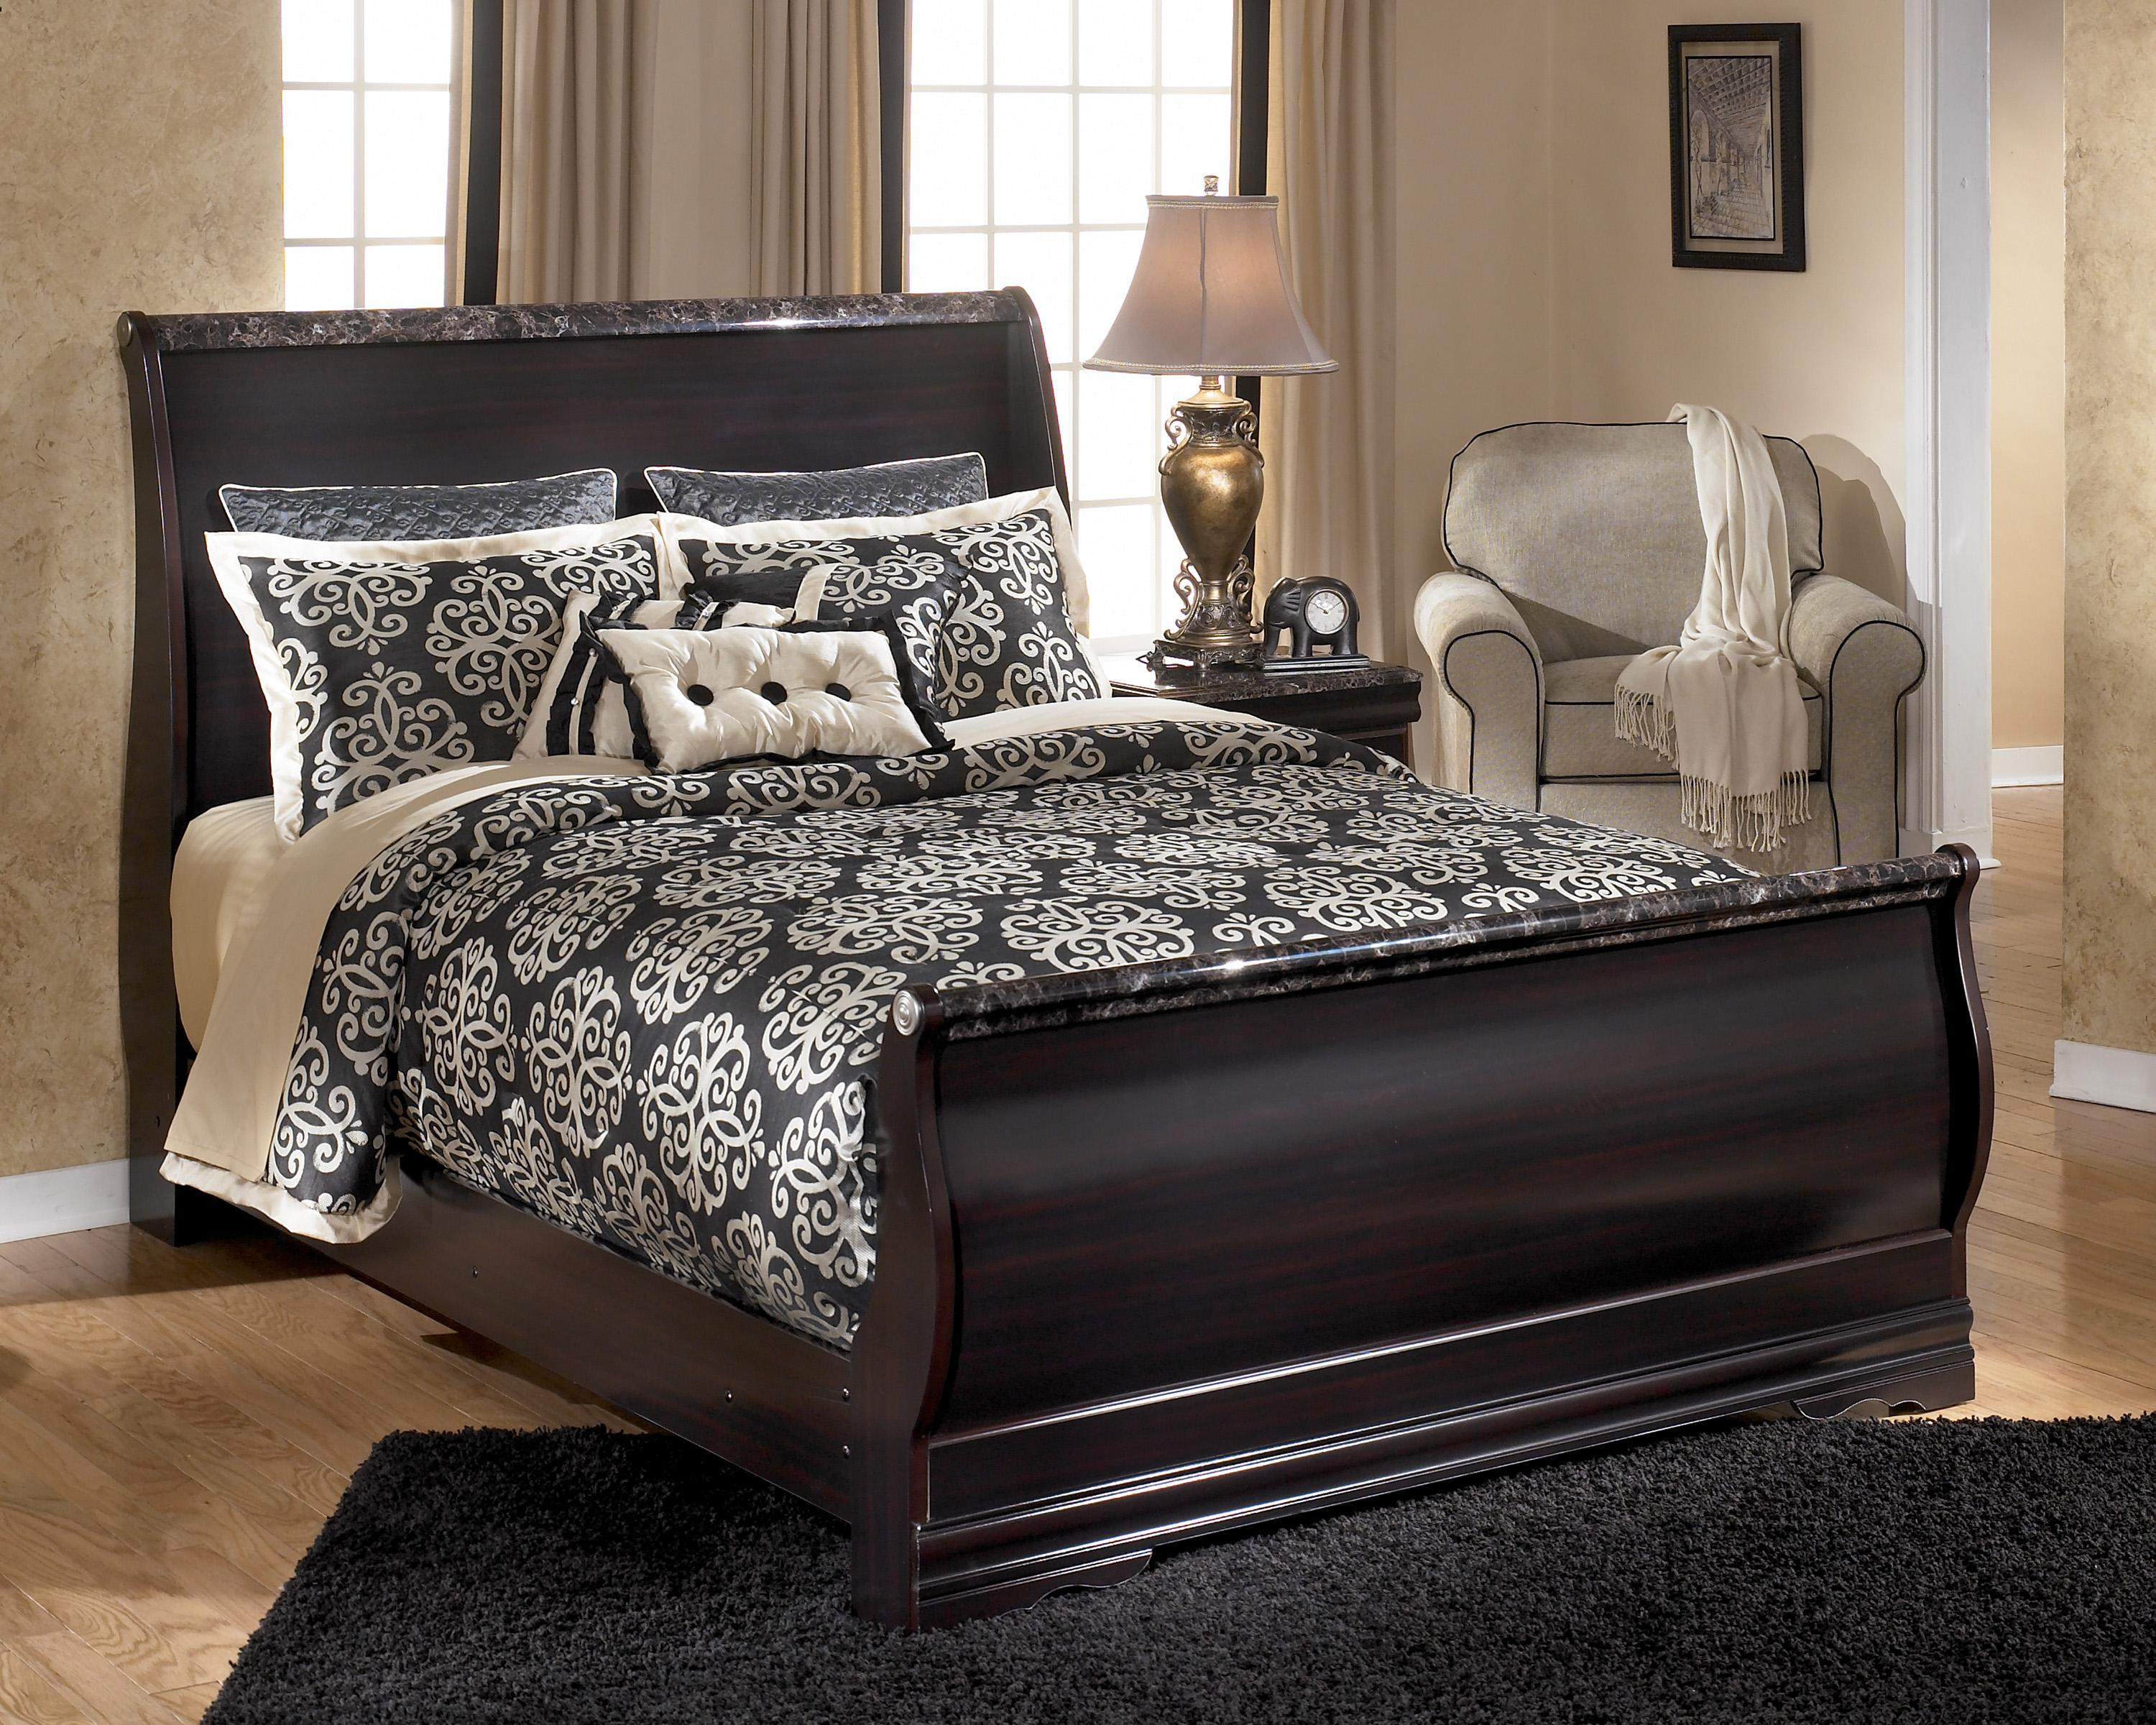 Signature Design by Ashley Esmarelda Queen Sleigh Bed - Item Number: B179-77+74+96